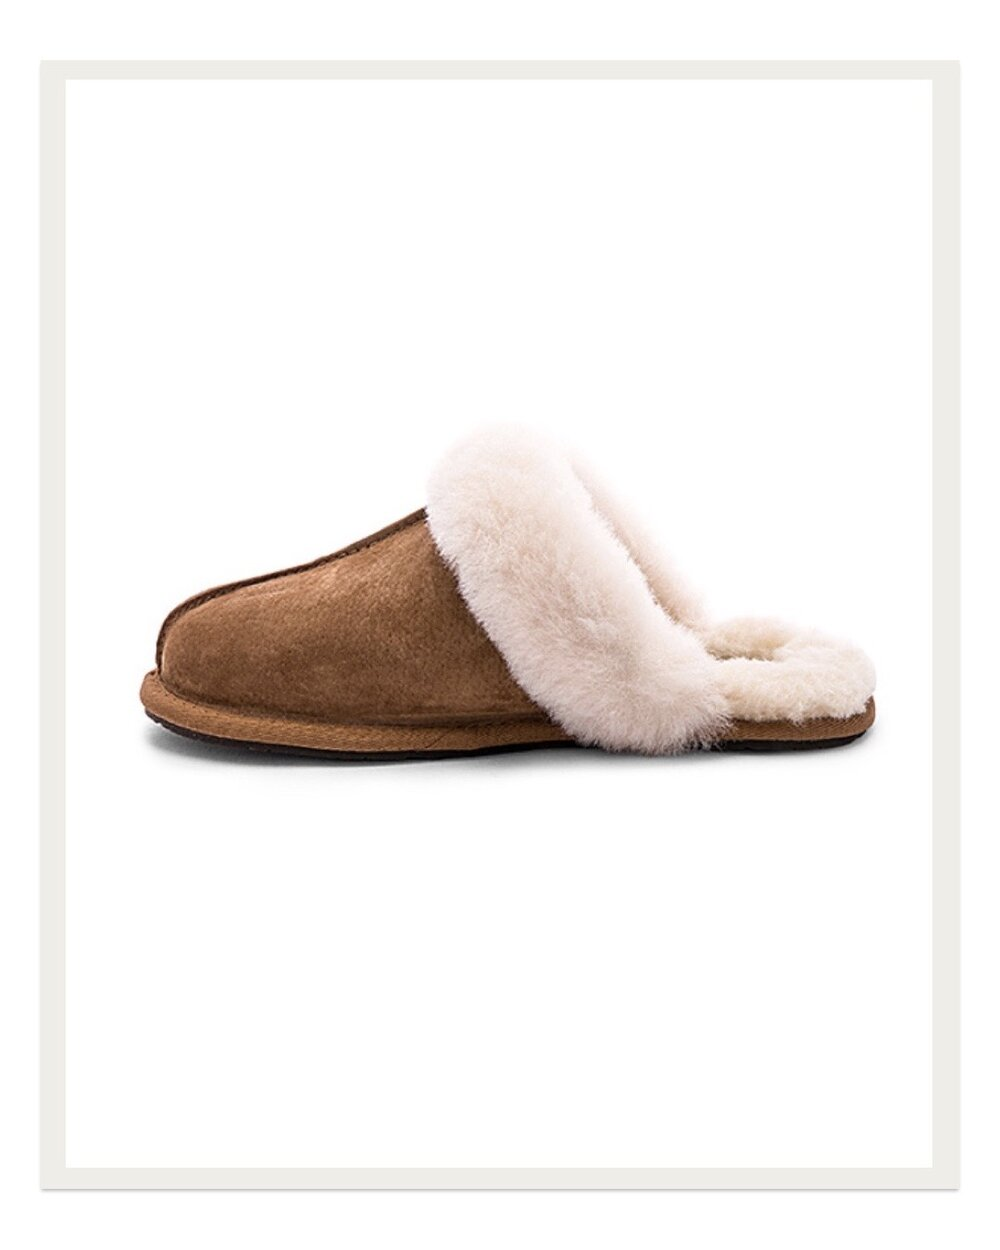 If you're looking for a more luxe slipper this holiday season, these Ugg beauties are so nice looking and well made. They are kings when it comes to cozy, furry shoes, and these slippers are a favorite amongst their customers.